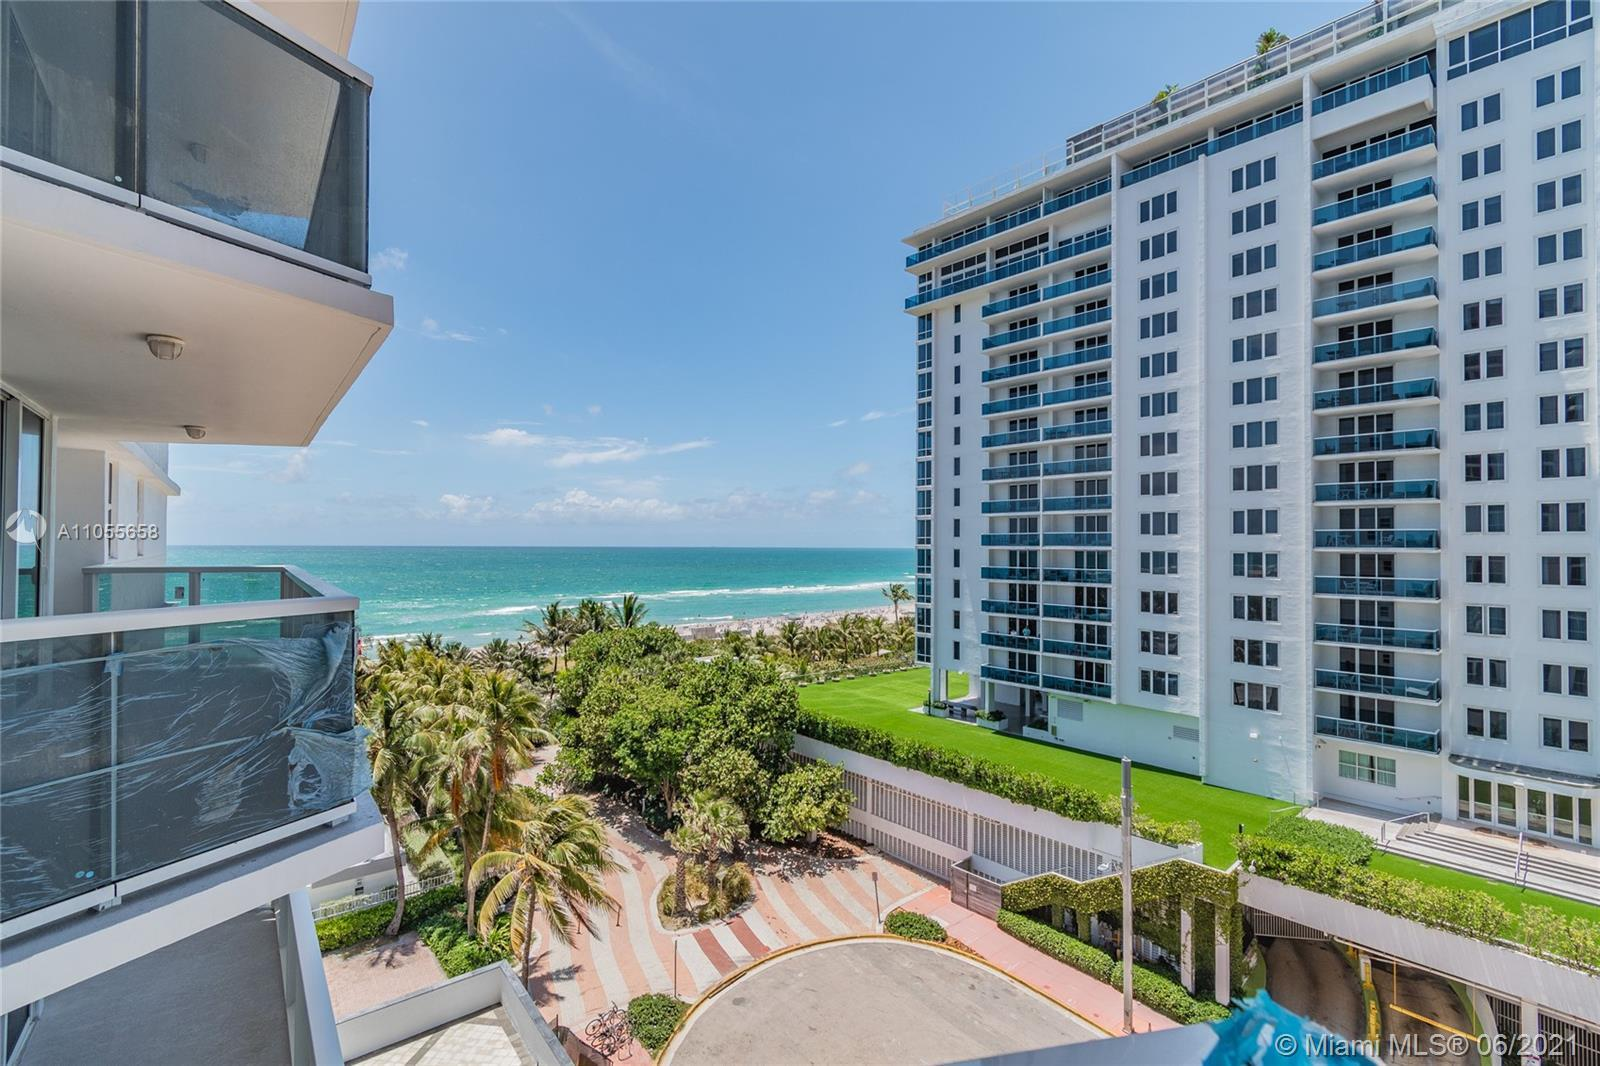 Enjoy the breathtaking views of the ocean while relaxing on your new balcony! At the Riviera Condo y